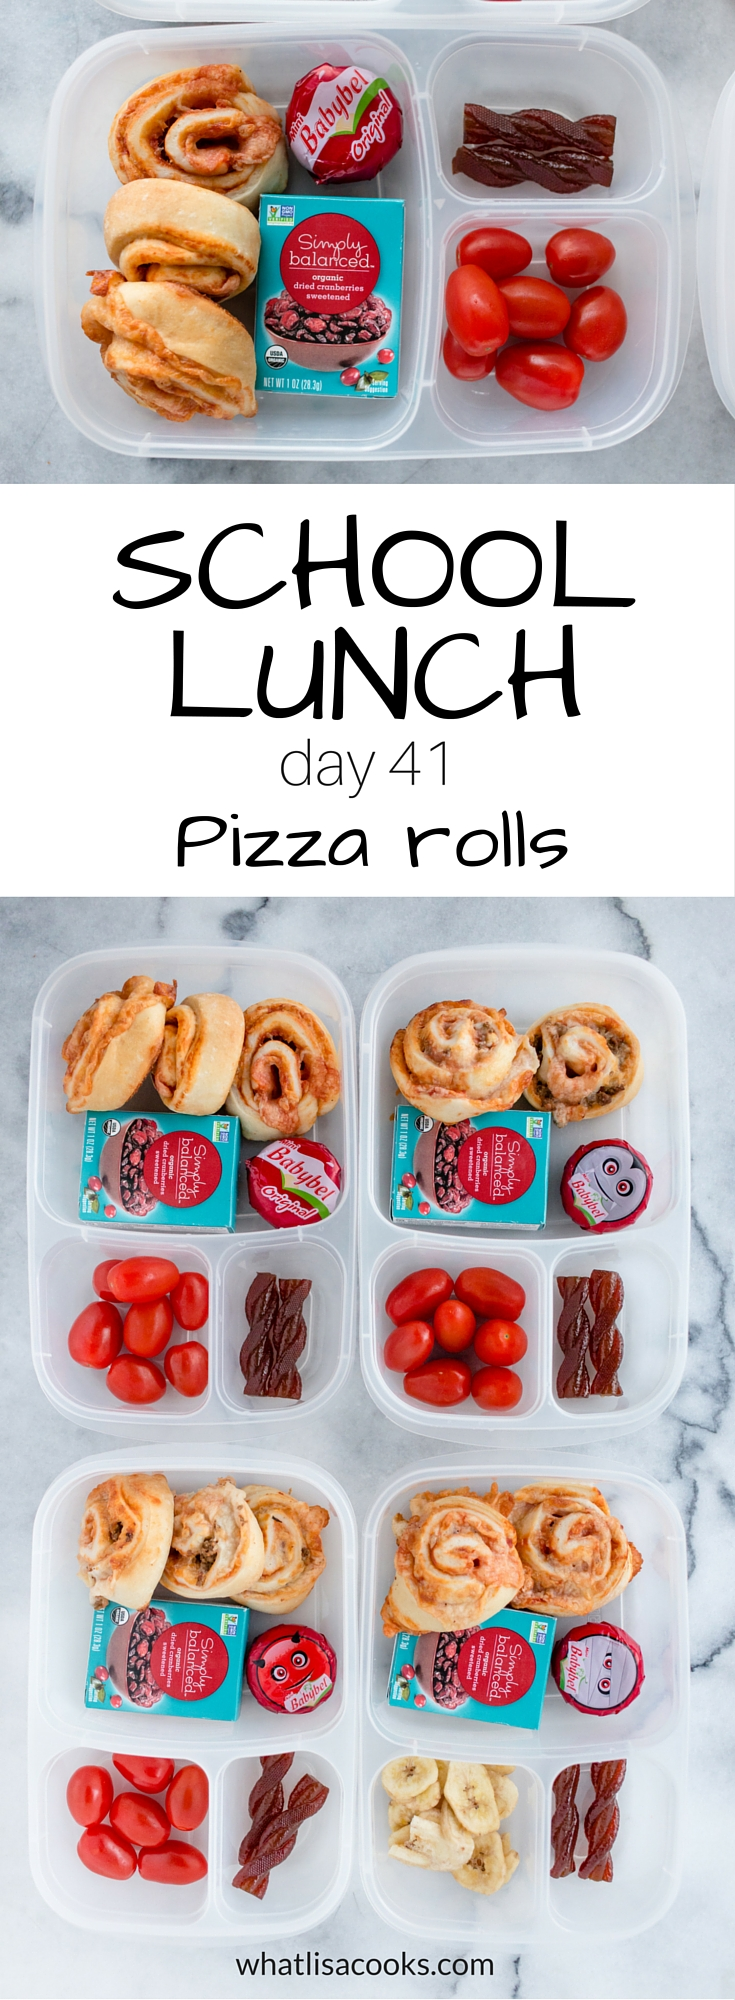 Make school lunch packing fast and easy - with lunch ideas and tips from WhatLisaCooks.com